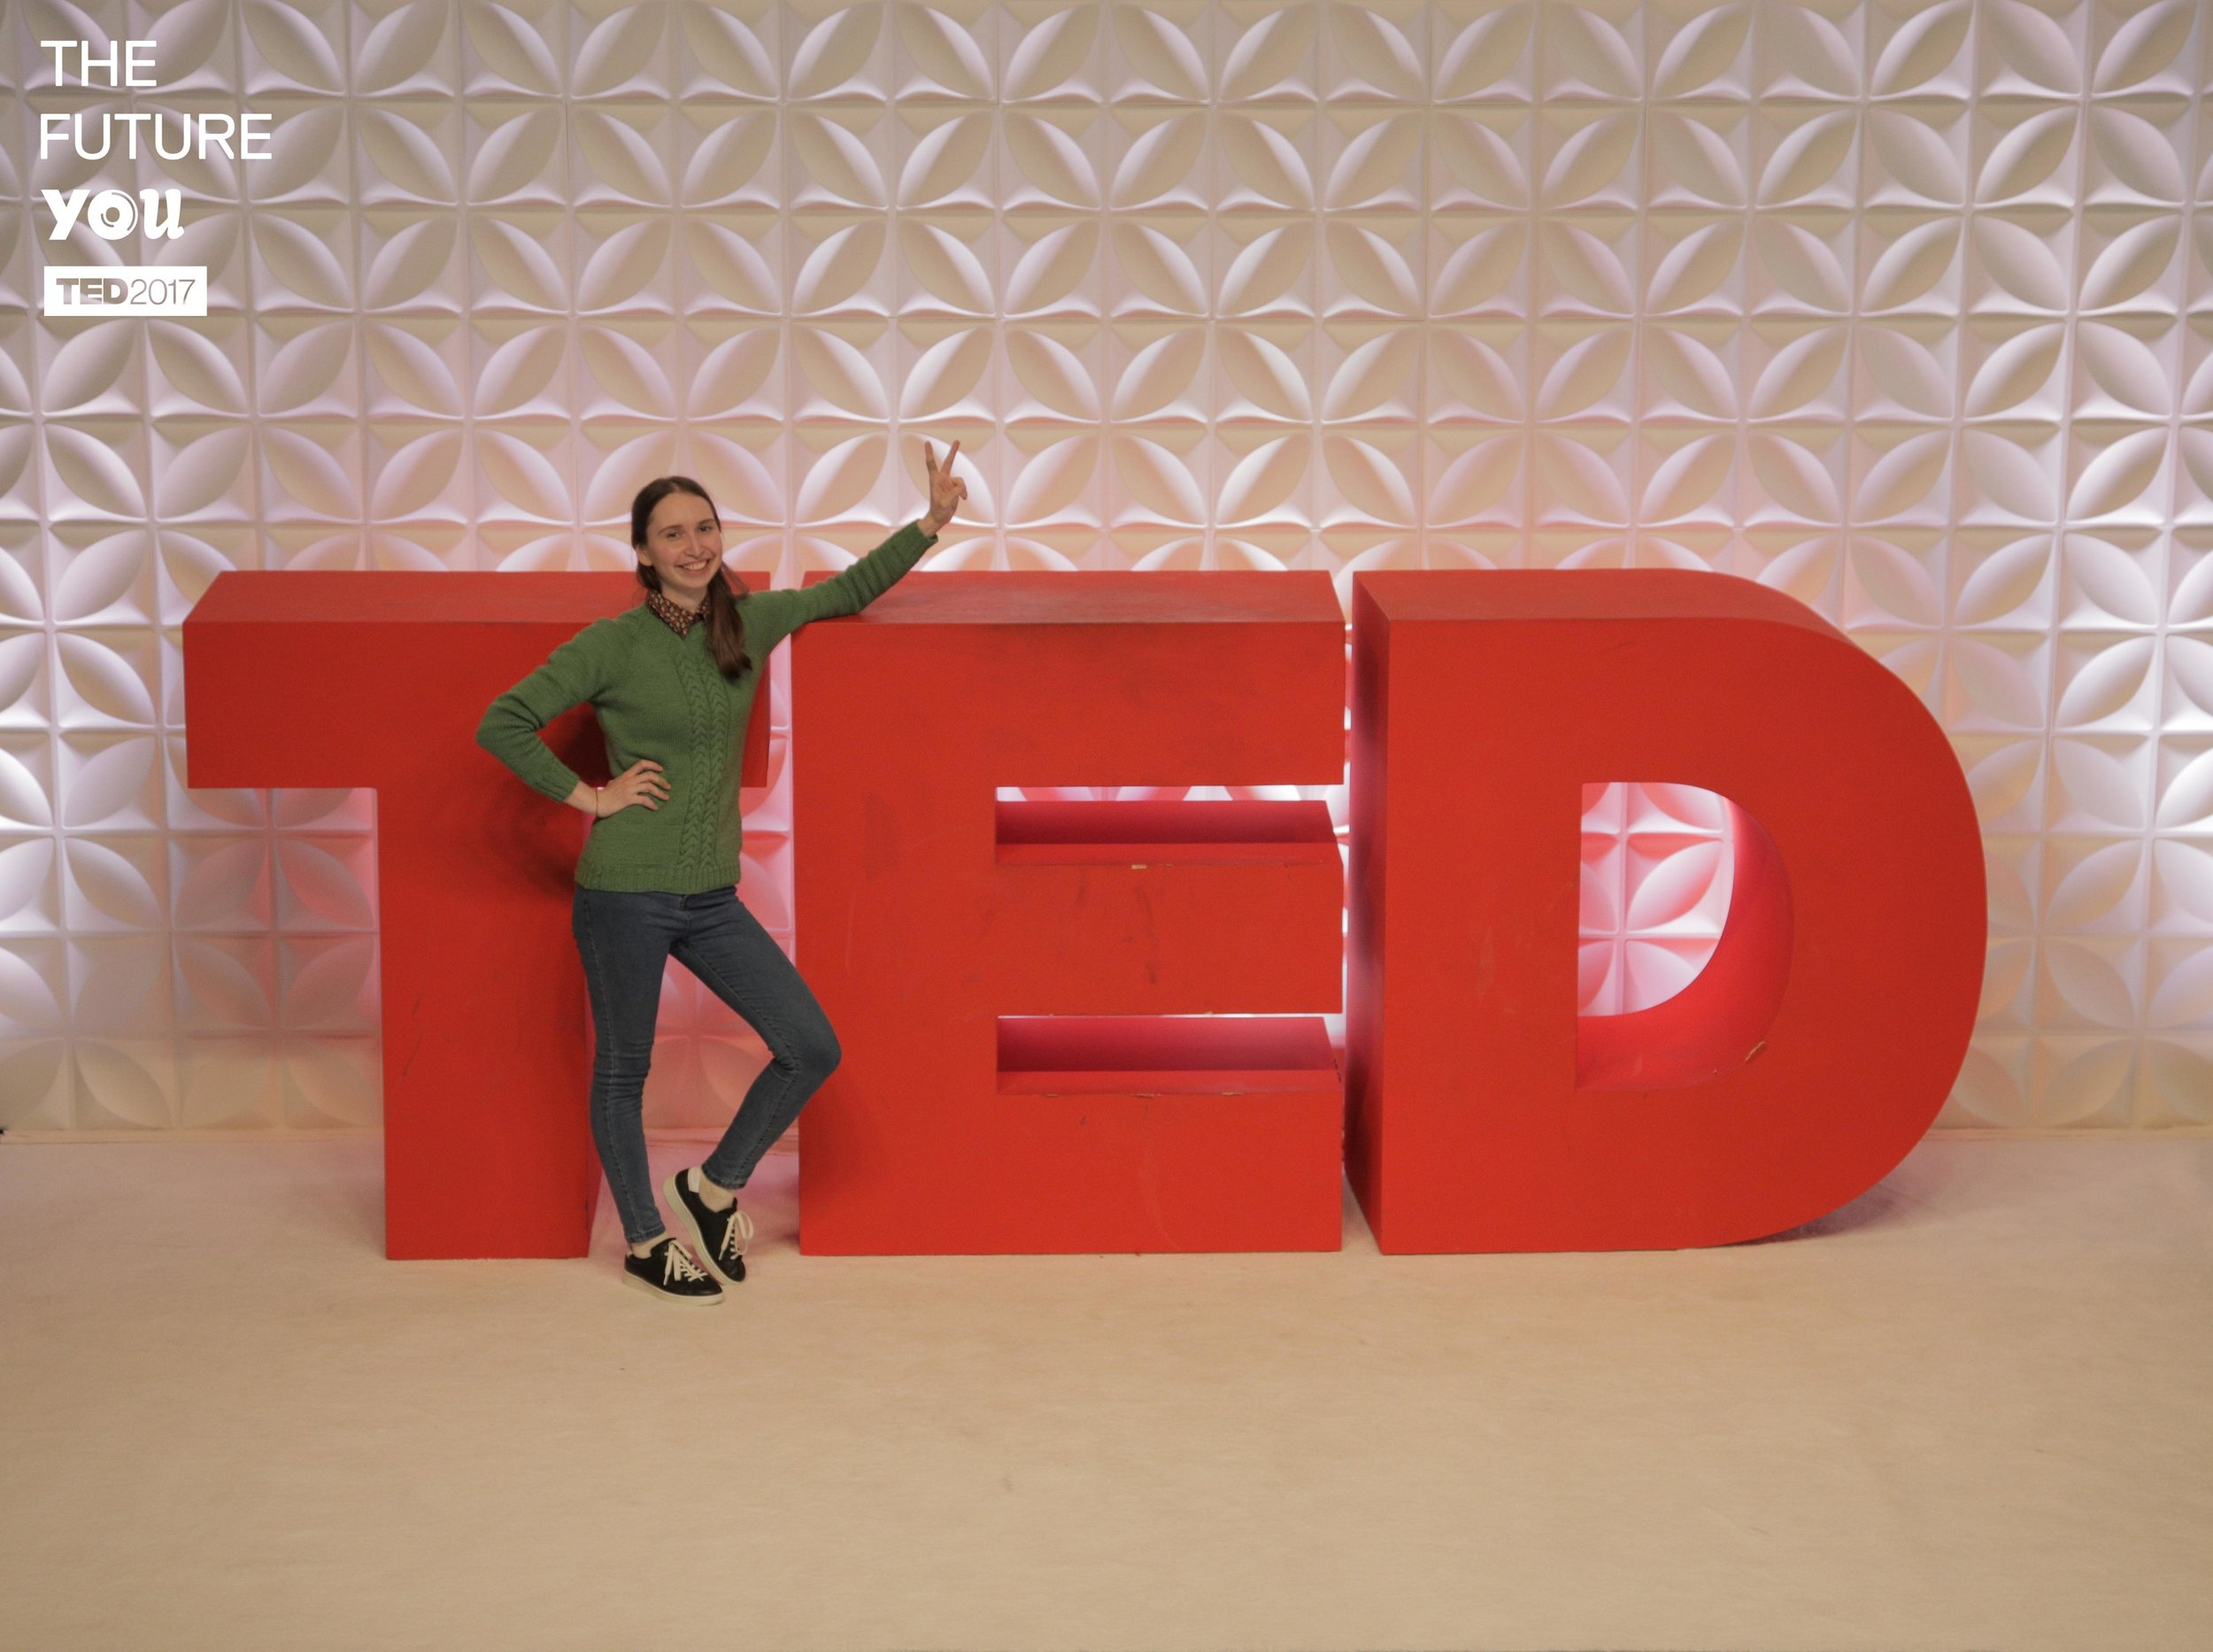 Photo: TED